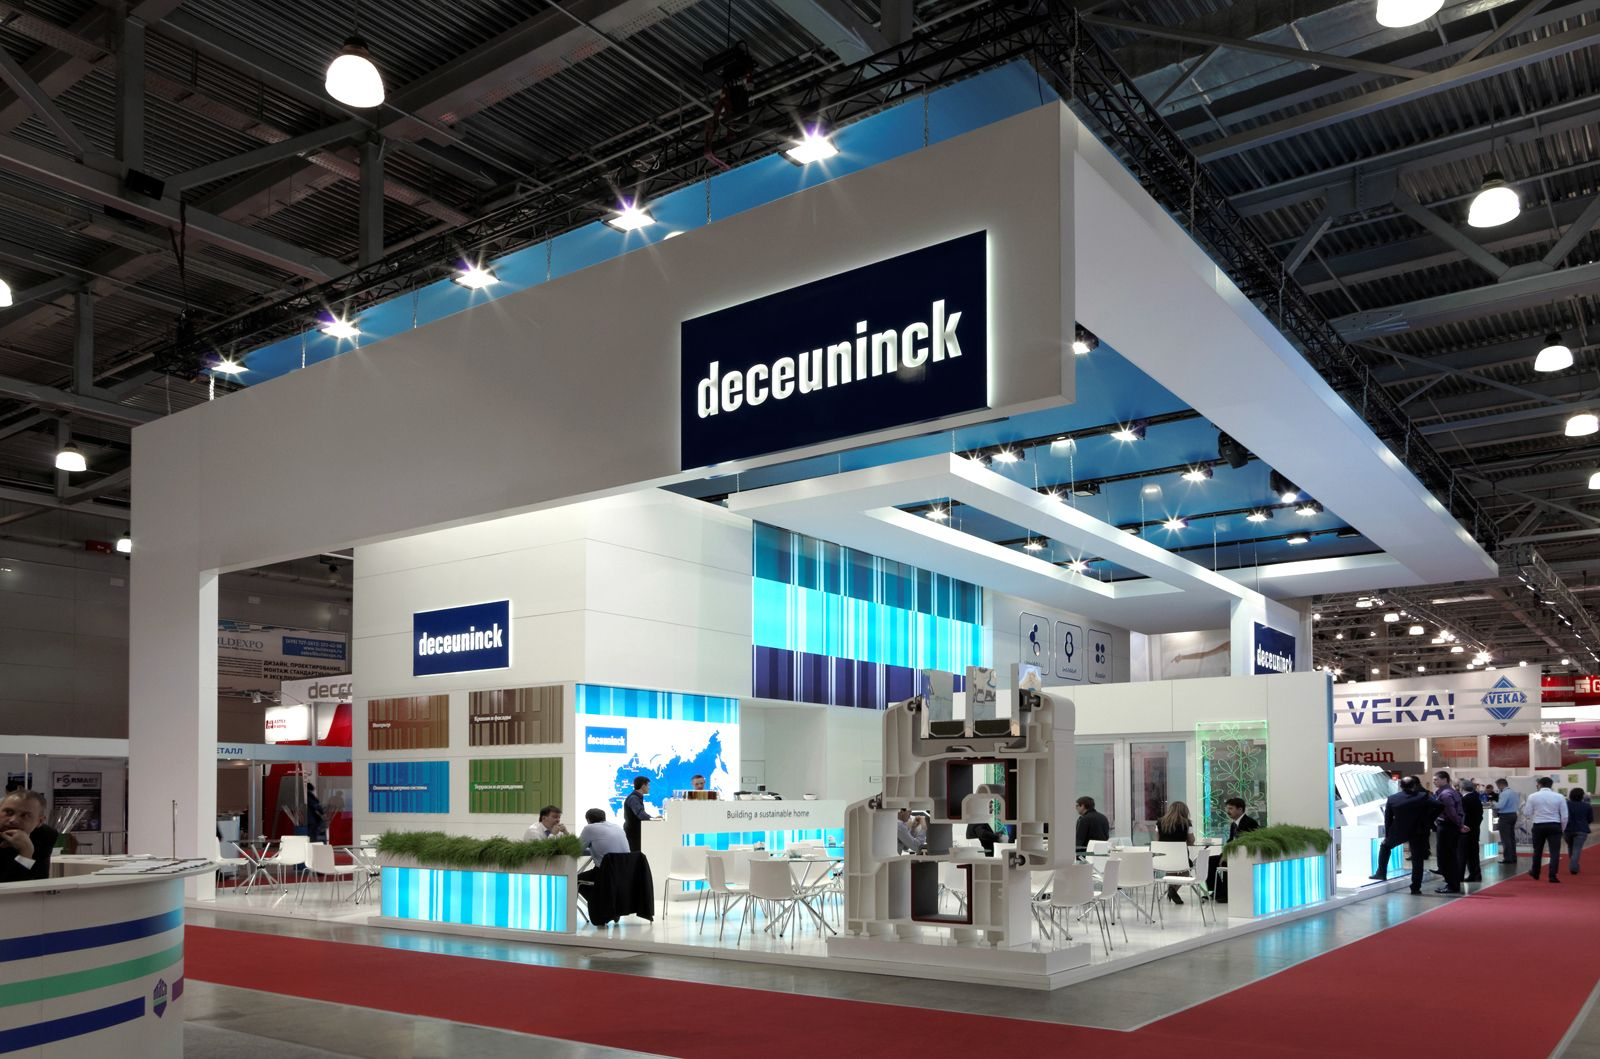 Exhibition Stand Design And Construction : Exhibition stand for deceuninck company design and